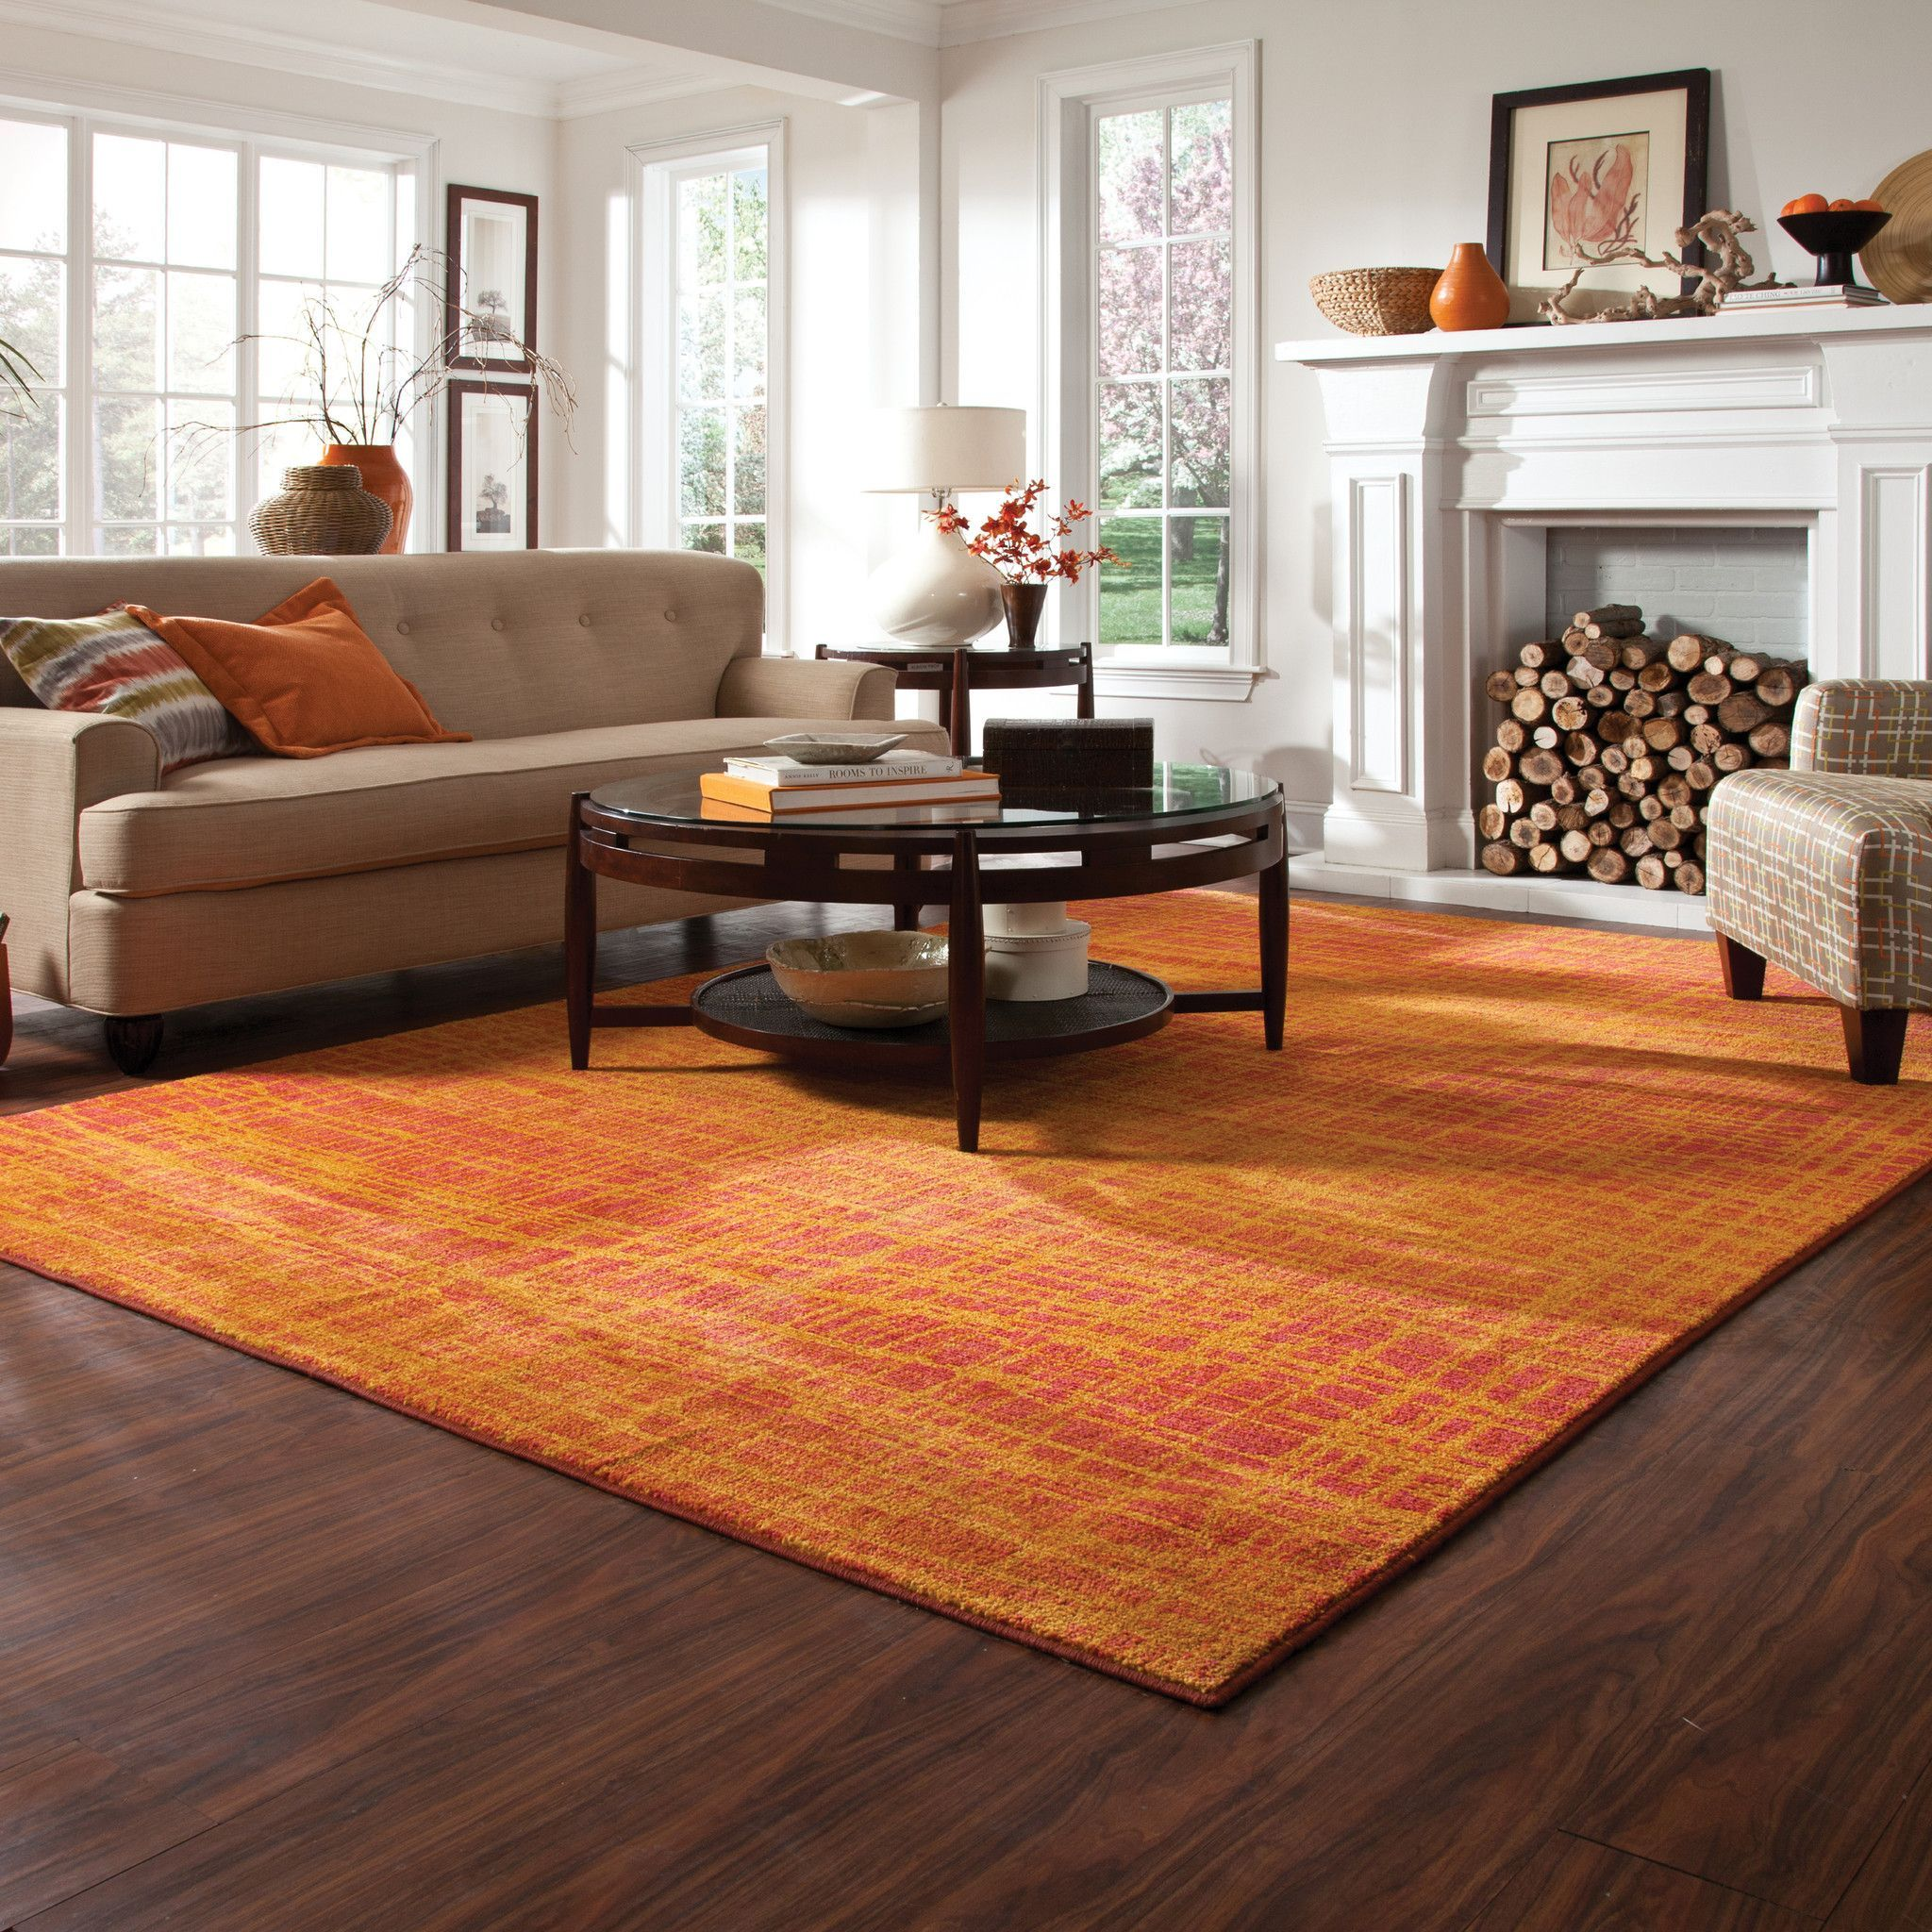 Expressions Orange Yellow Abstract Rug Orange Rugs Yellow Area Rugs Area Rugs